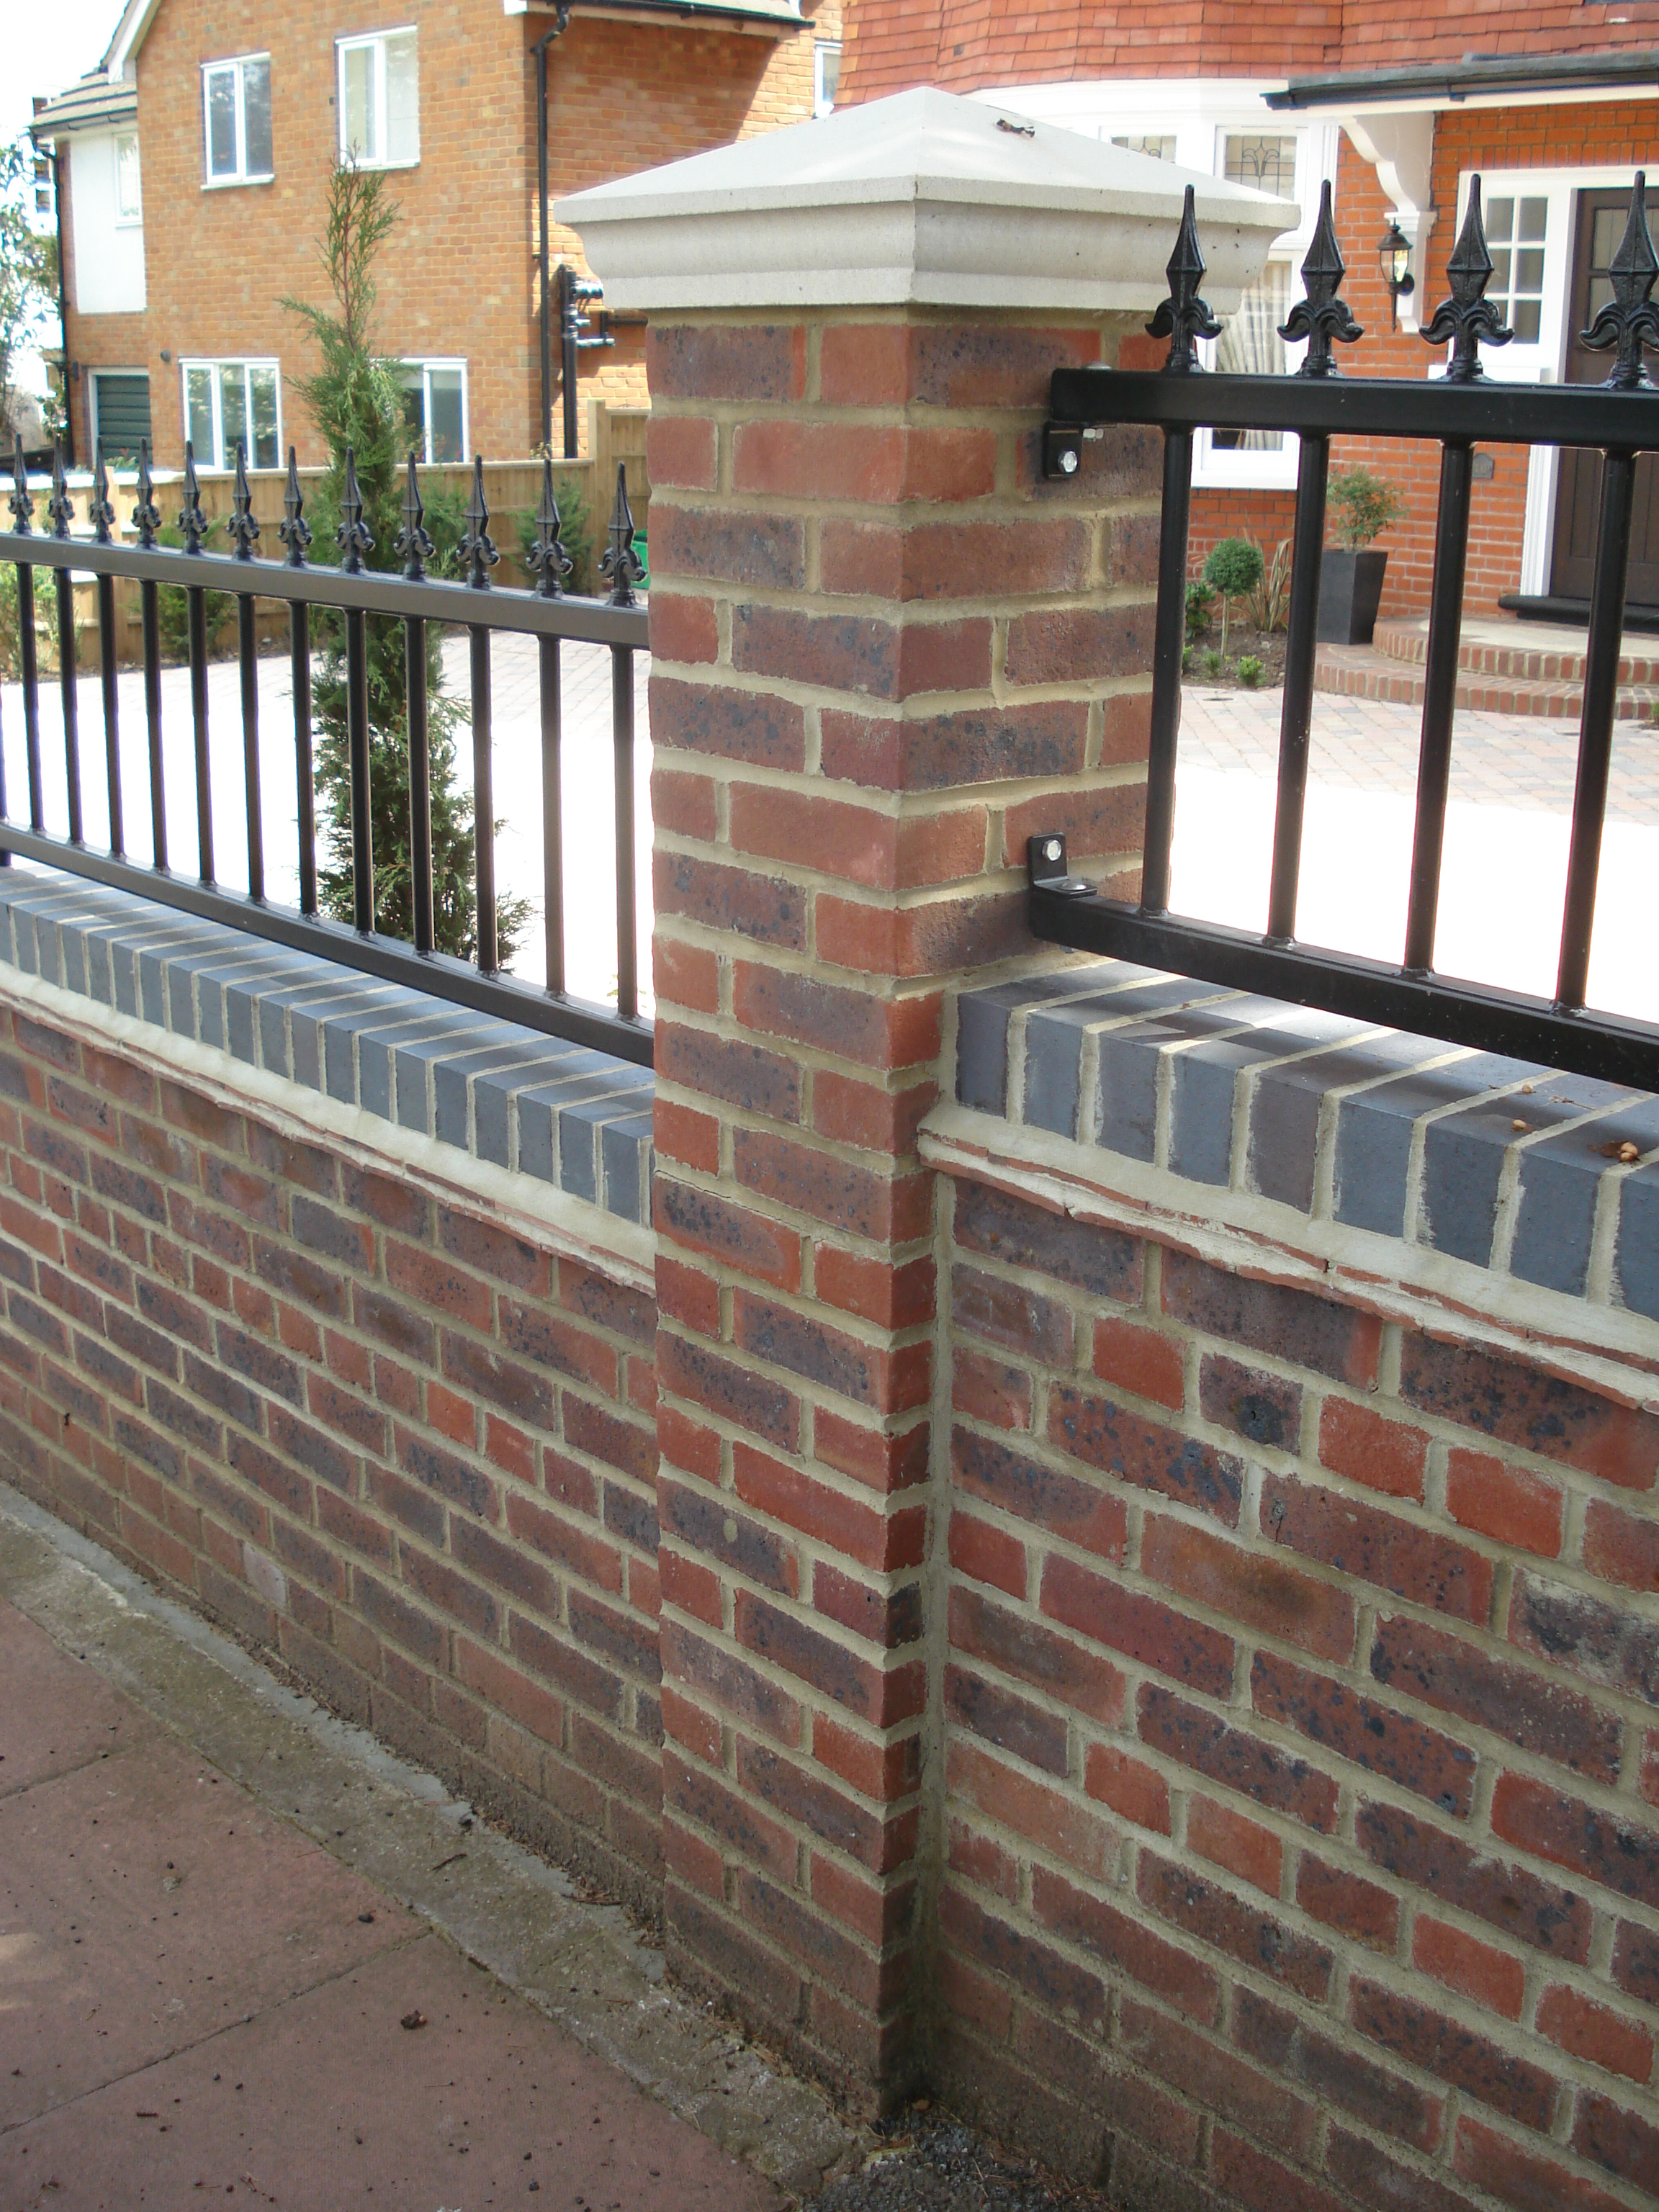 Front Garden - High quality brickwork to the front of the property